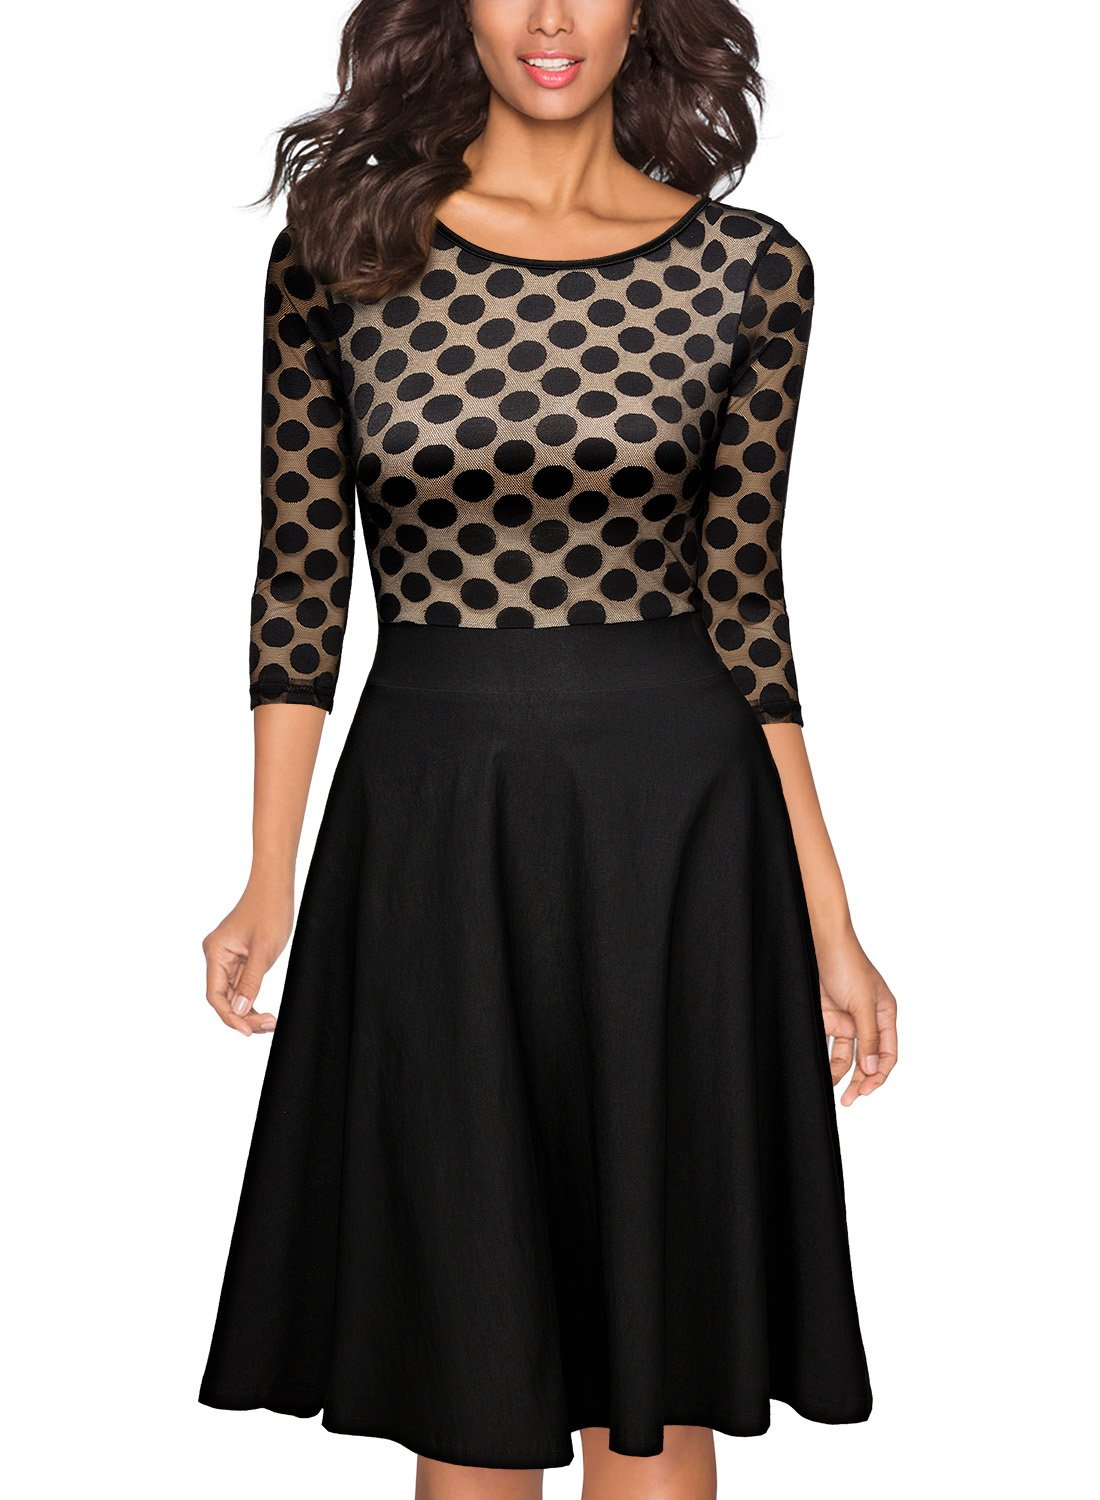 Miusol Women's Casual Polka Dot 2/3 1950'S Style Sleeve Party Swing Dress,Black,Large by Miusol